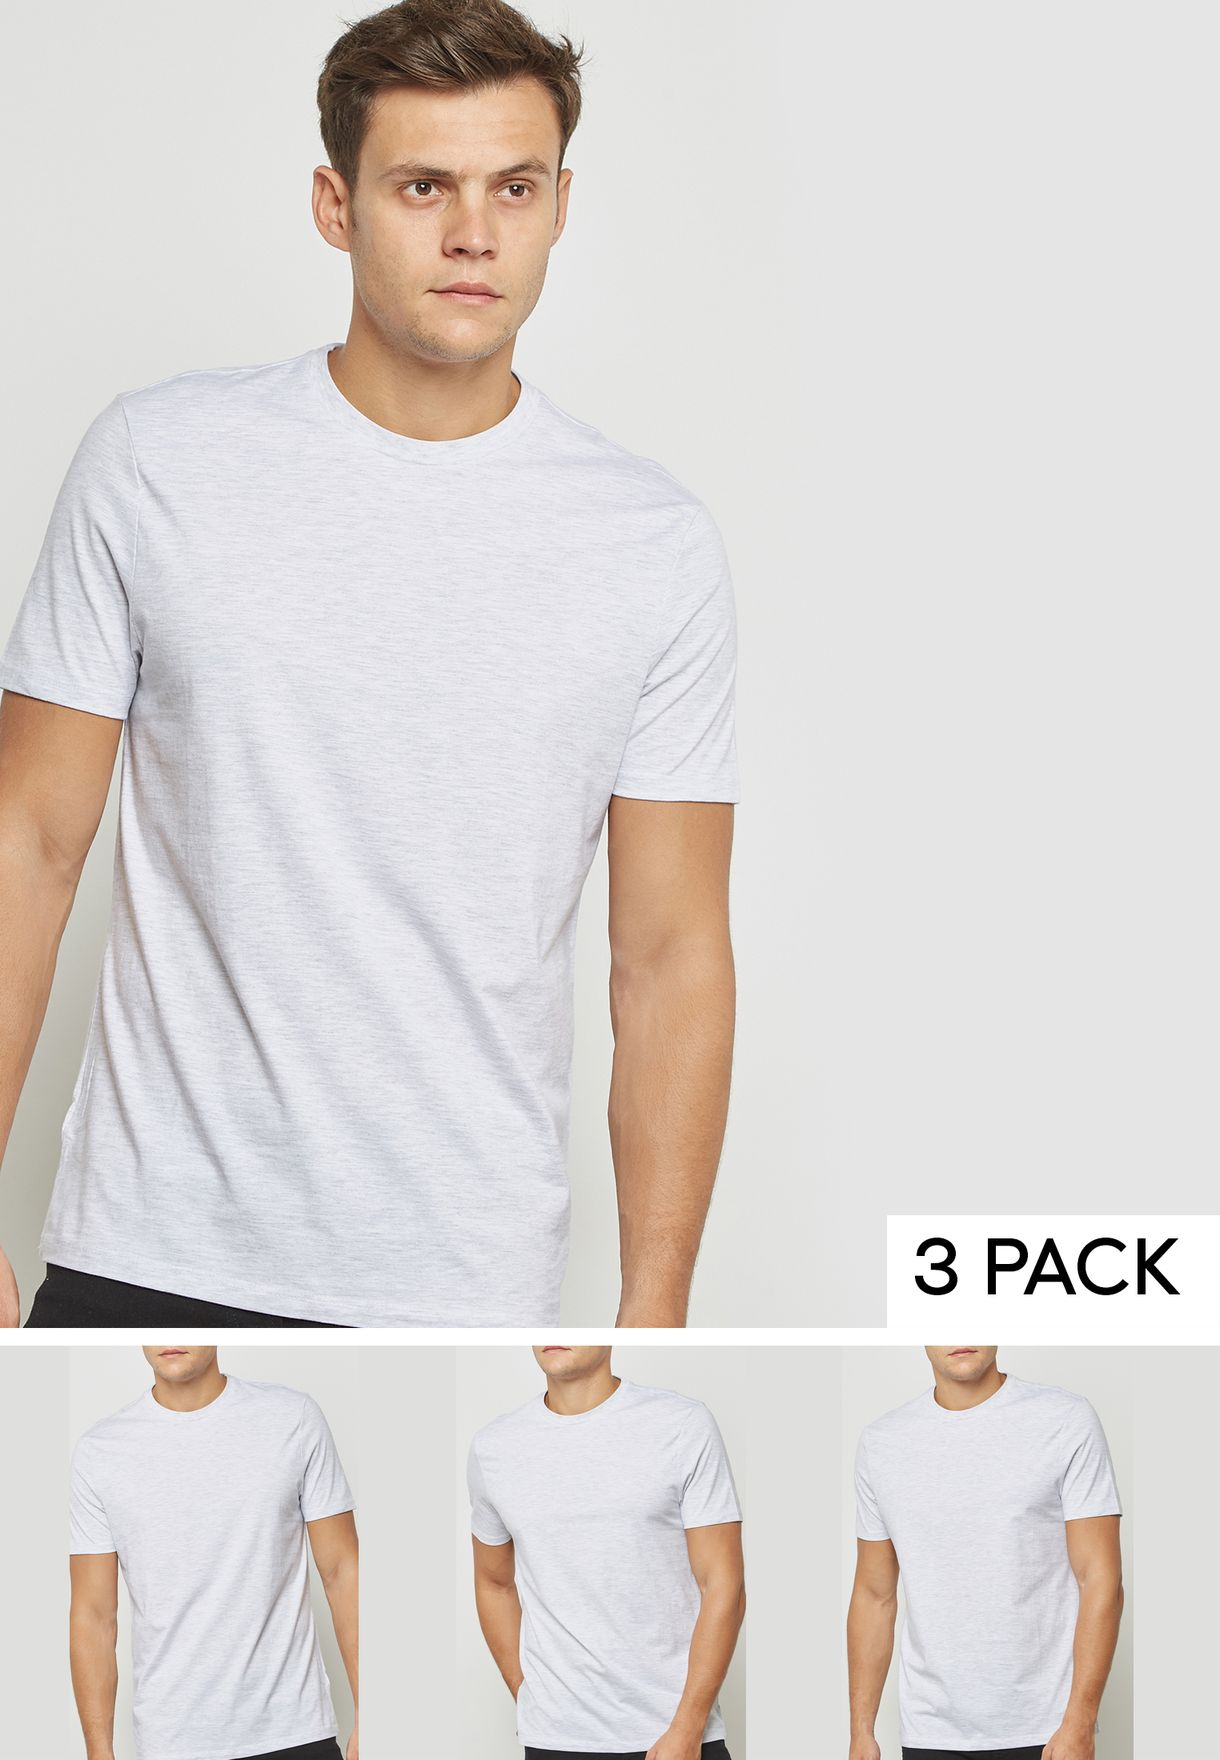 994270c8 Shop Topman grey 3 Pack Slim Fit T-Shirt 71M02QLGY for Men in UAE ...